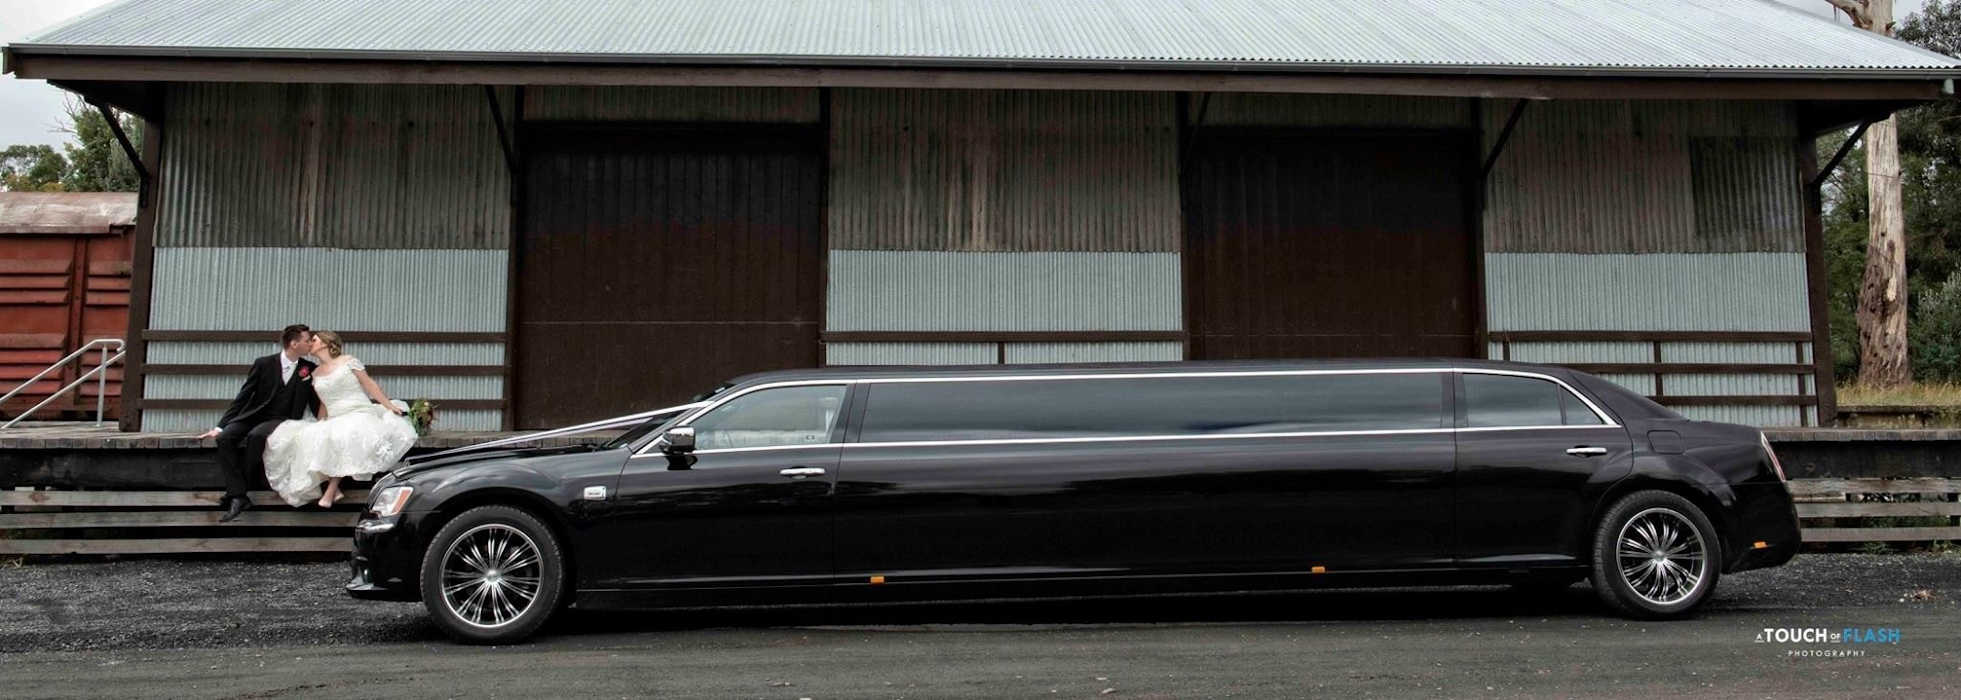 Yarra Valley Wedding Limo Hire